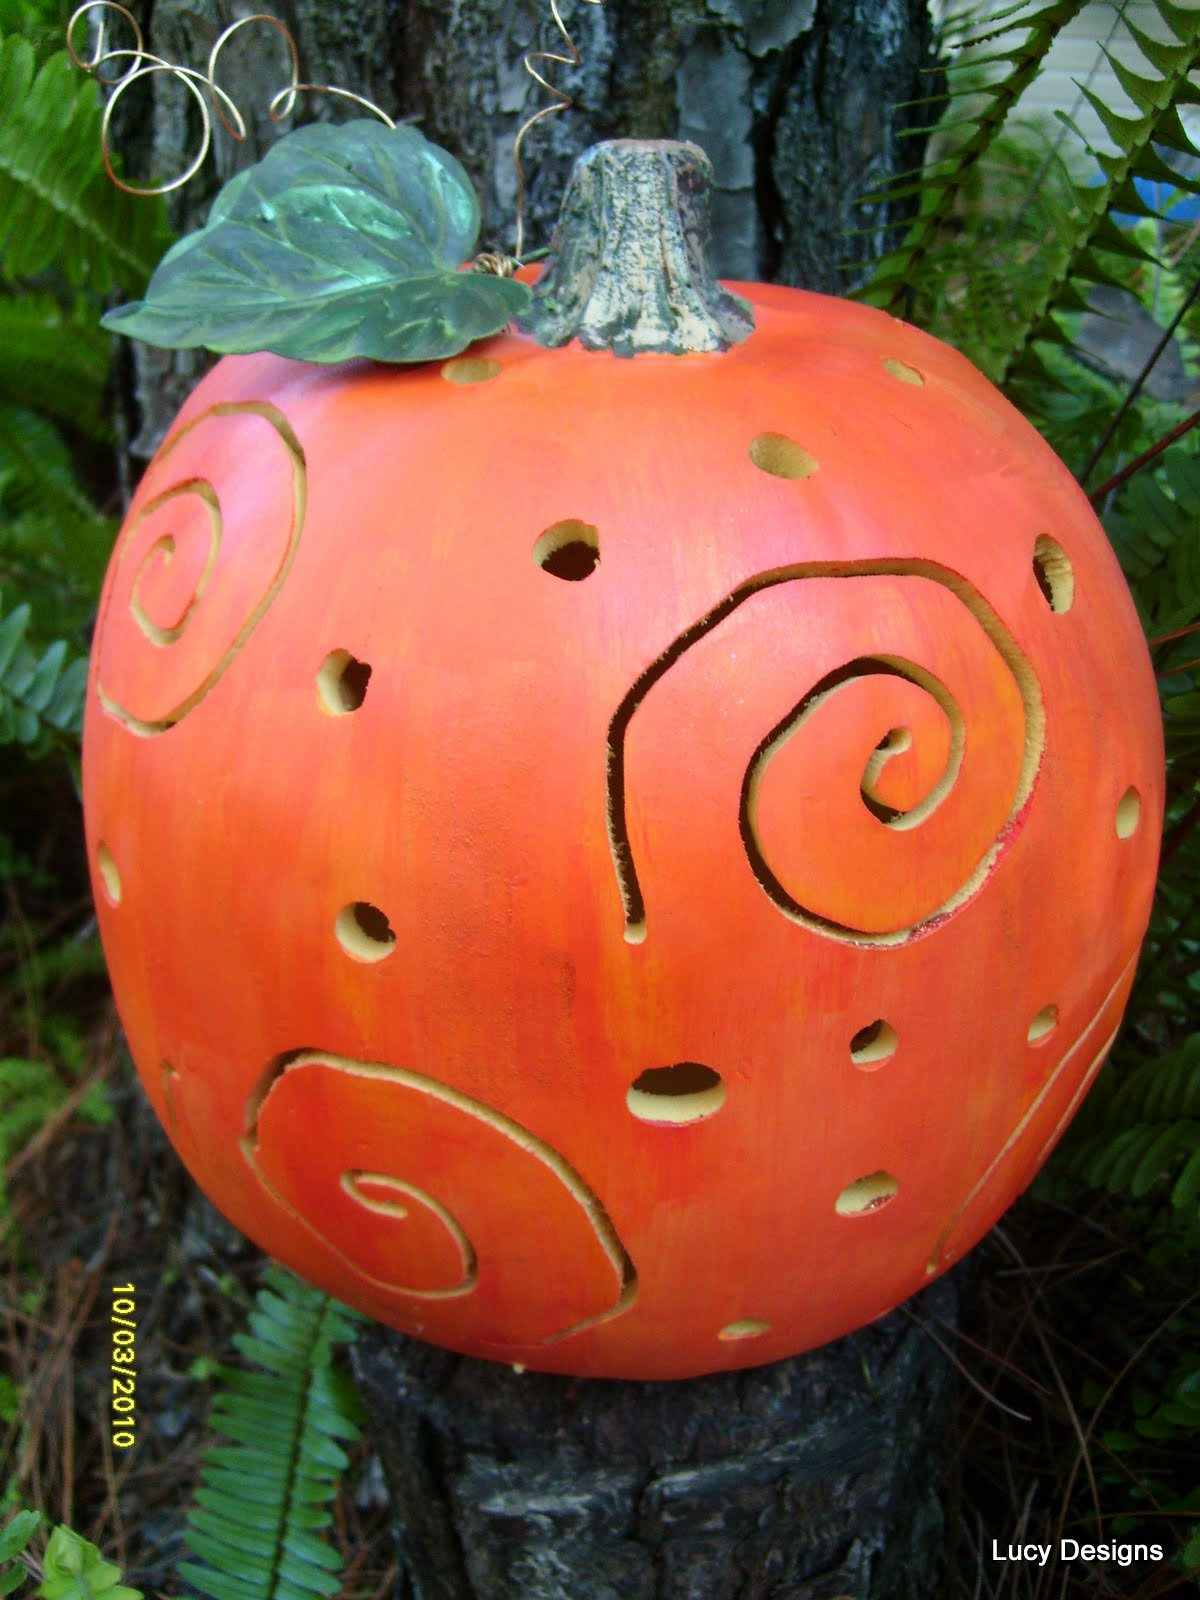 Foam pumpkin makeover using power tools and fun hand painted